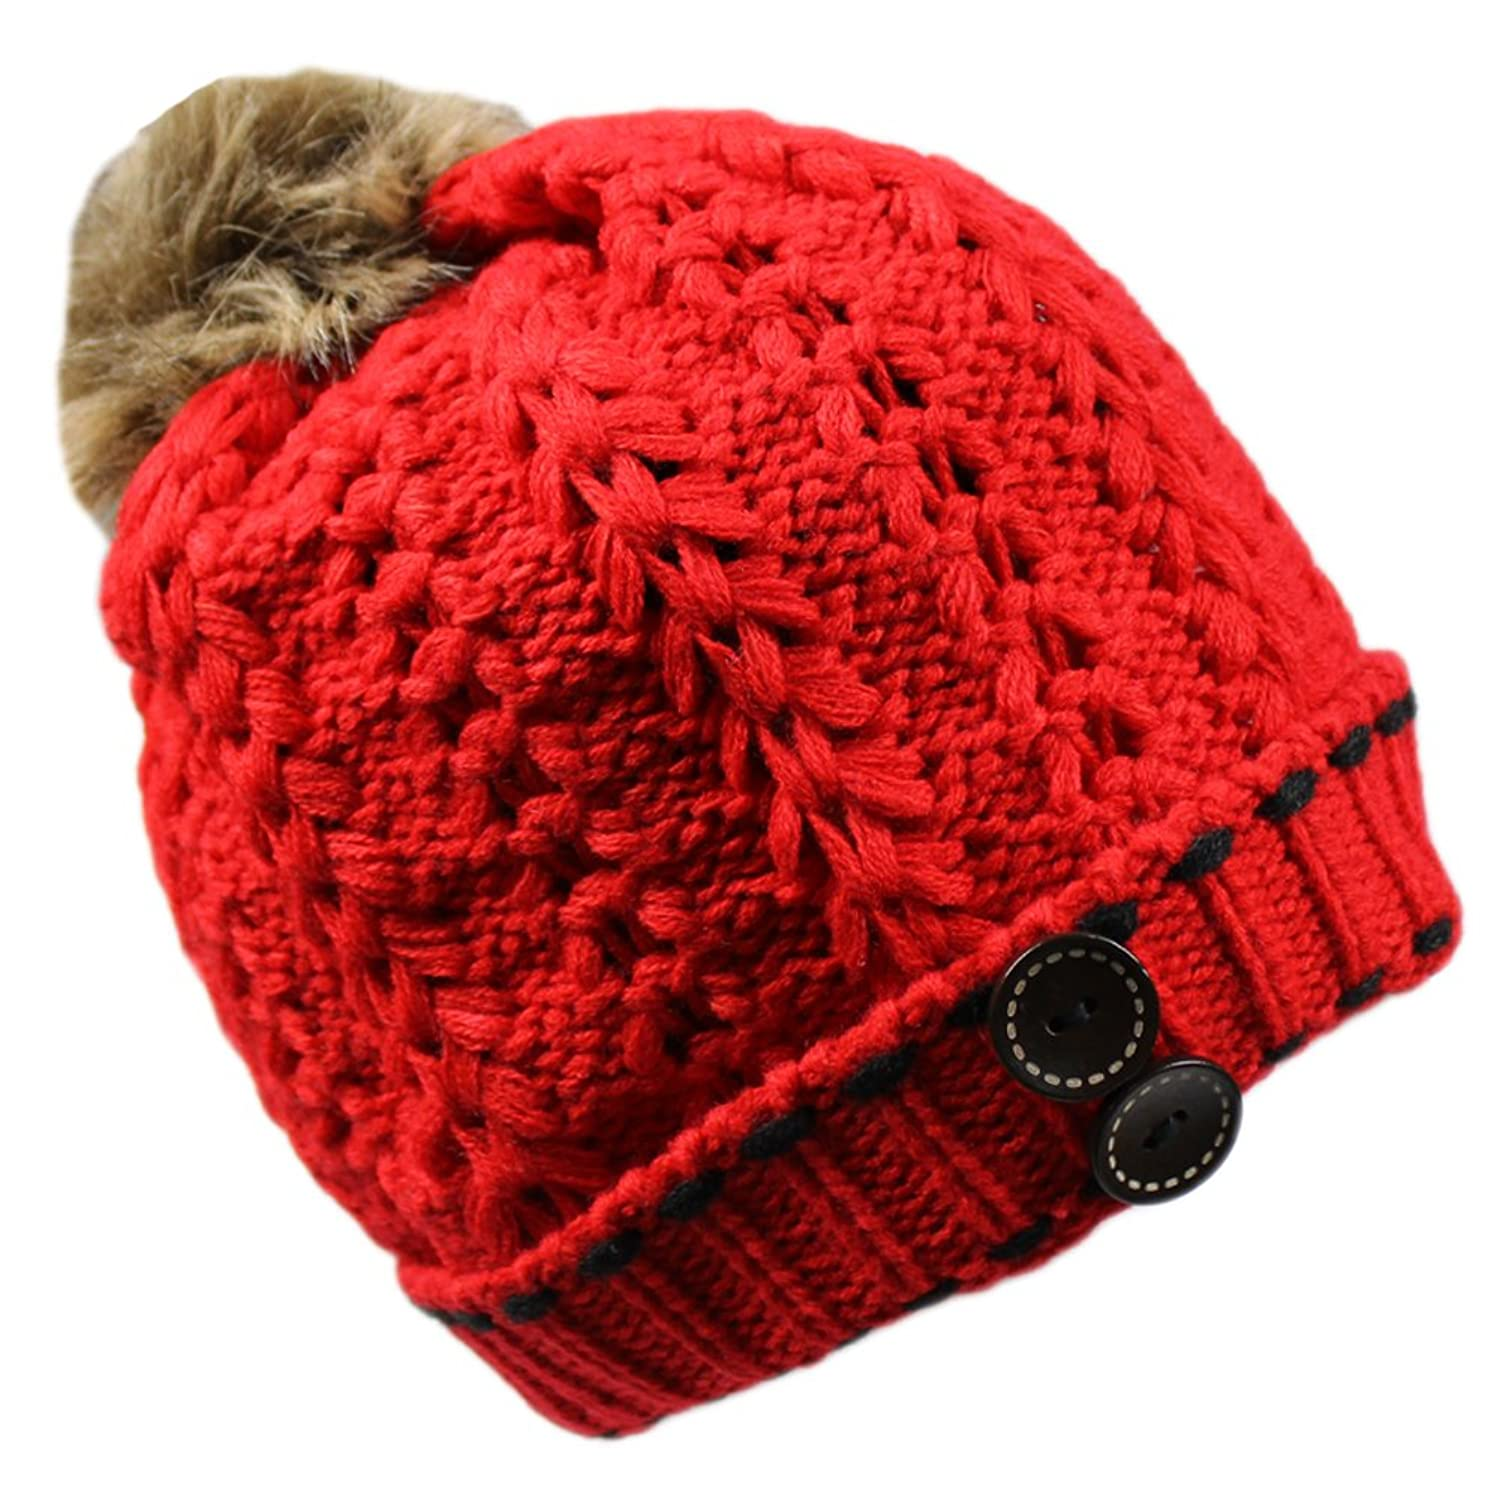 Women's Winter Warm Thick Chunky Slouchy Crochet Ski Skully Knit Beanie Cap Hat